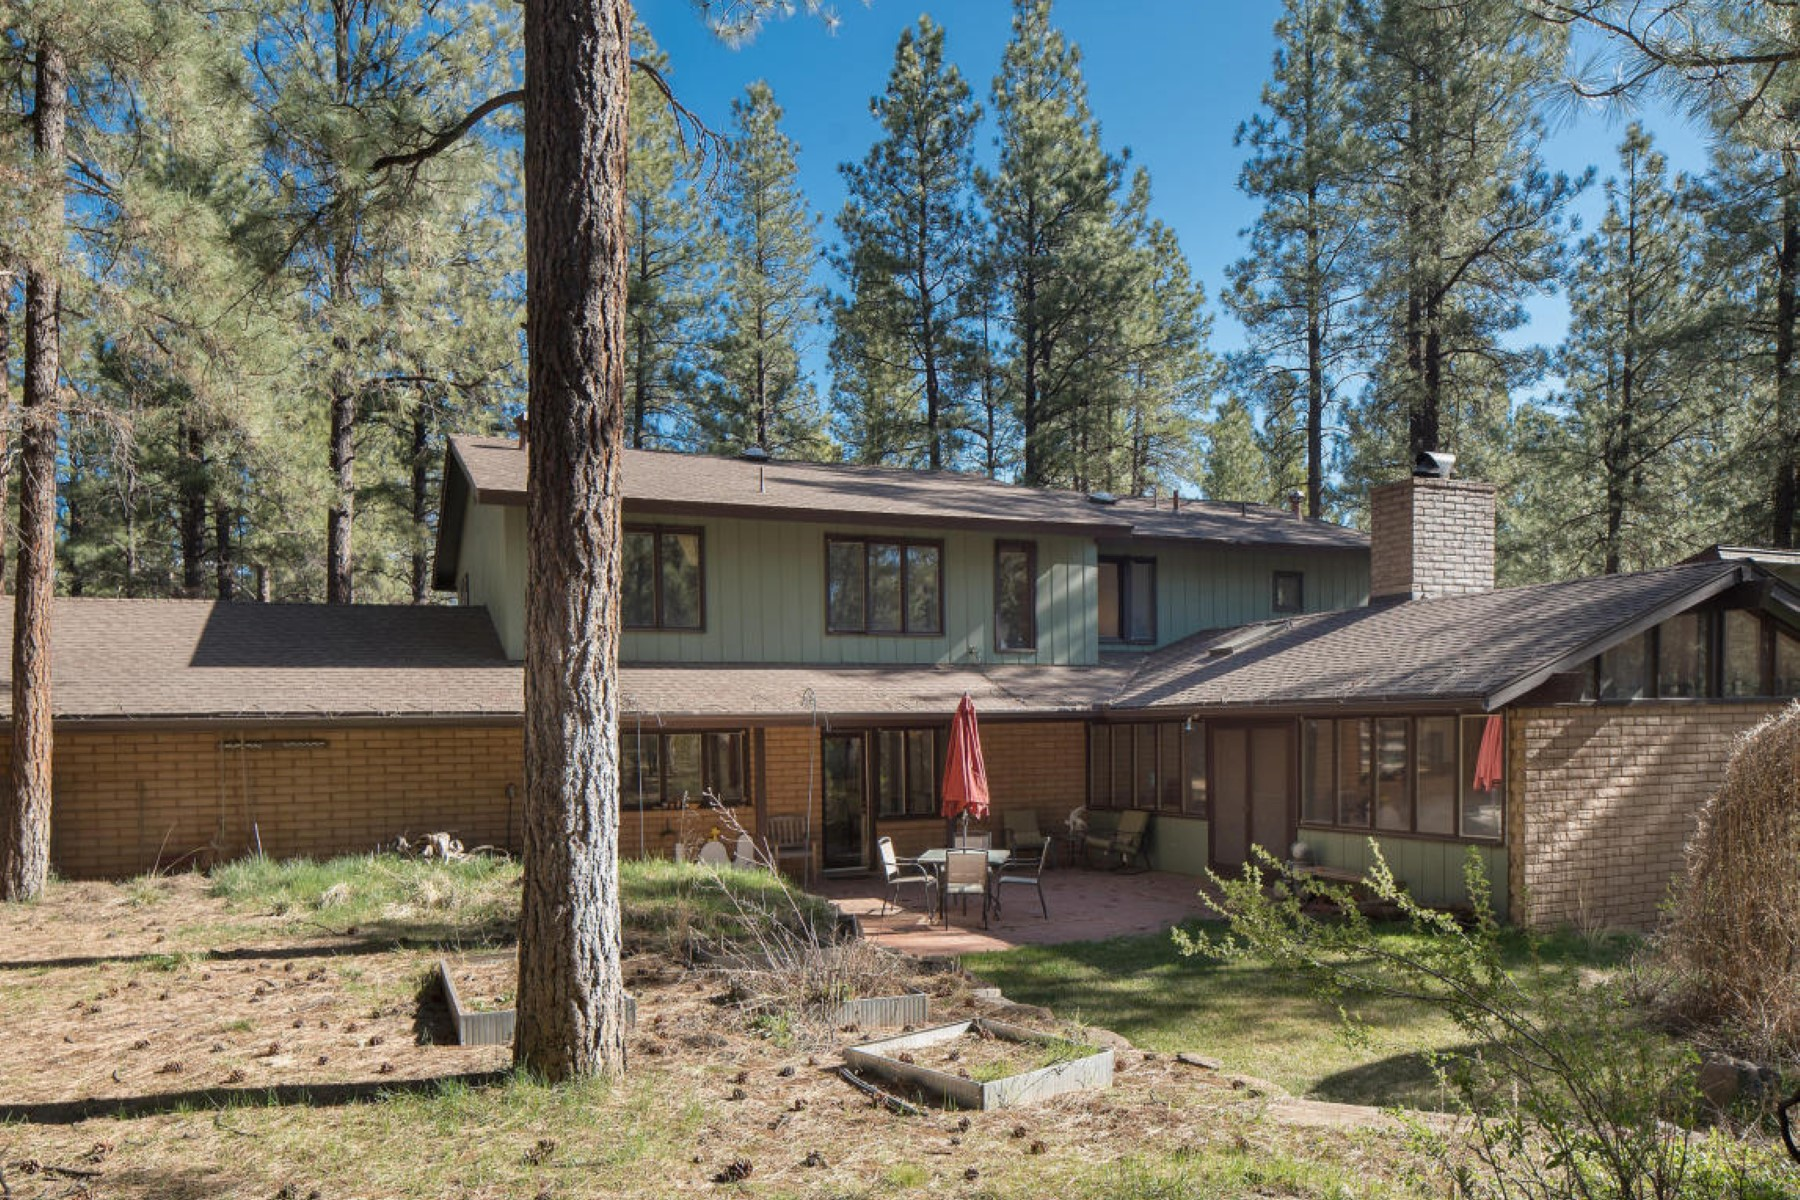 Single Family Home for Sale at Beautiful home in the highly coveted Coconino Estates 1457 W Meade Ln Flagstaff, Arizona, 86001 United States